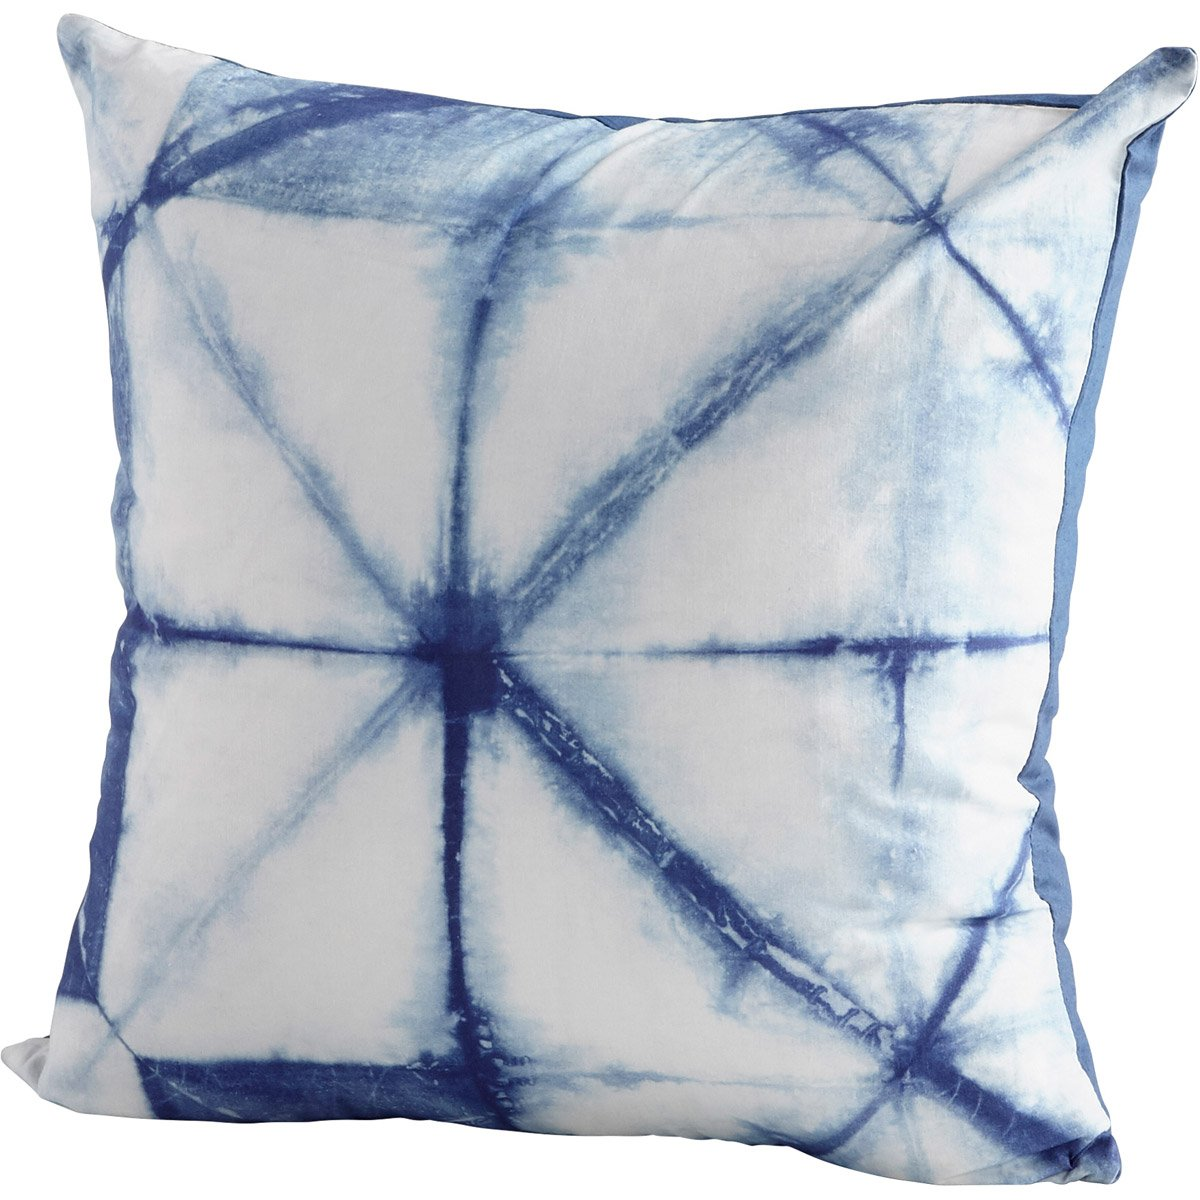 Cyan Design Prismatic Pillows